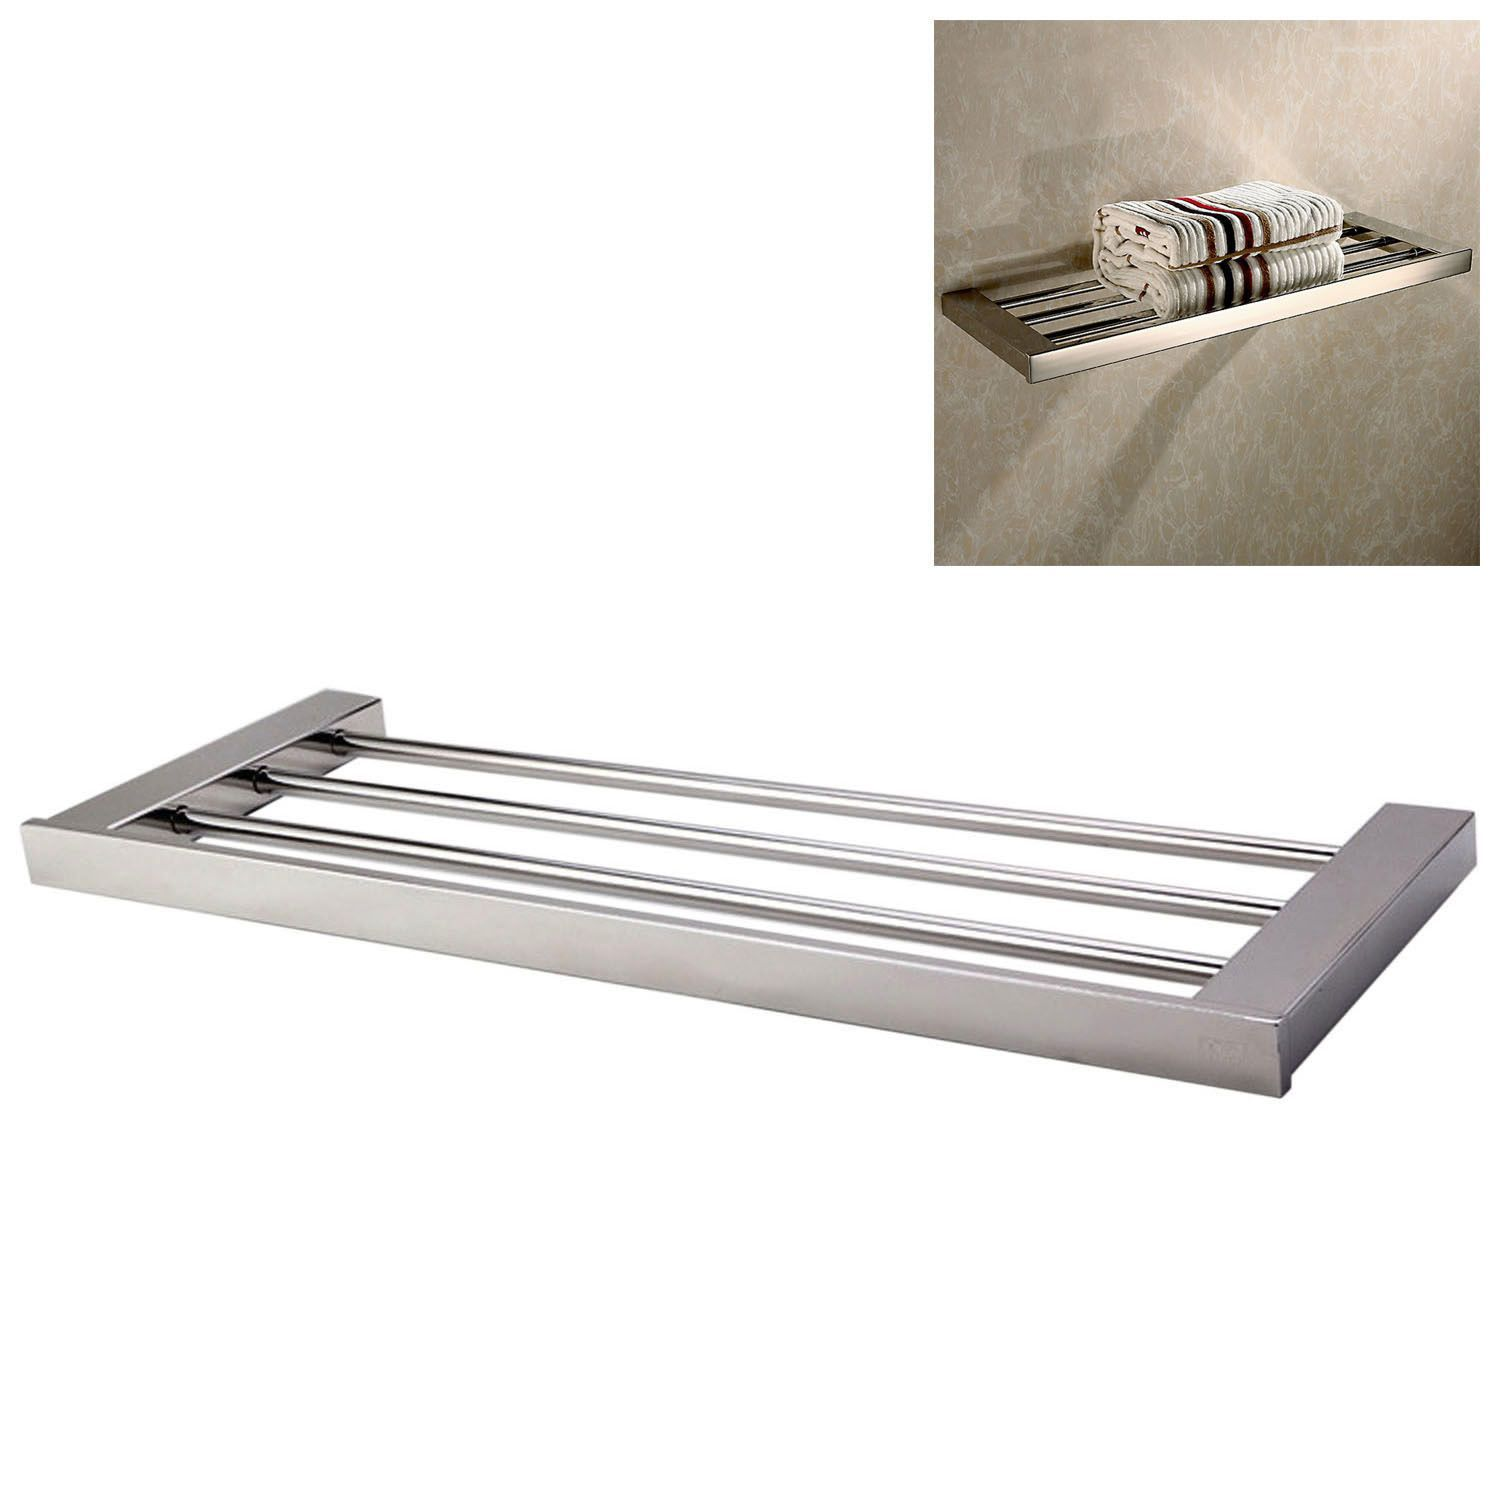 304 Stainless Steel Bathroom Lavatory Shelf Towel Rack Wall Mount ...